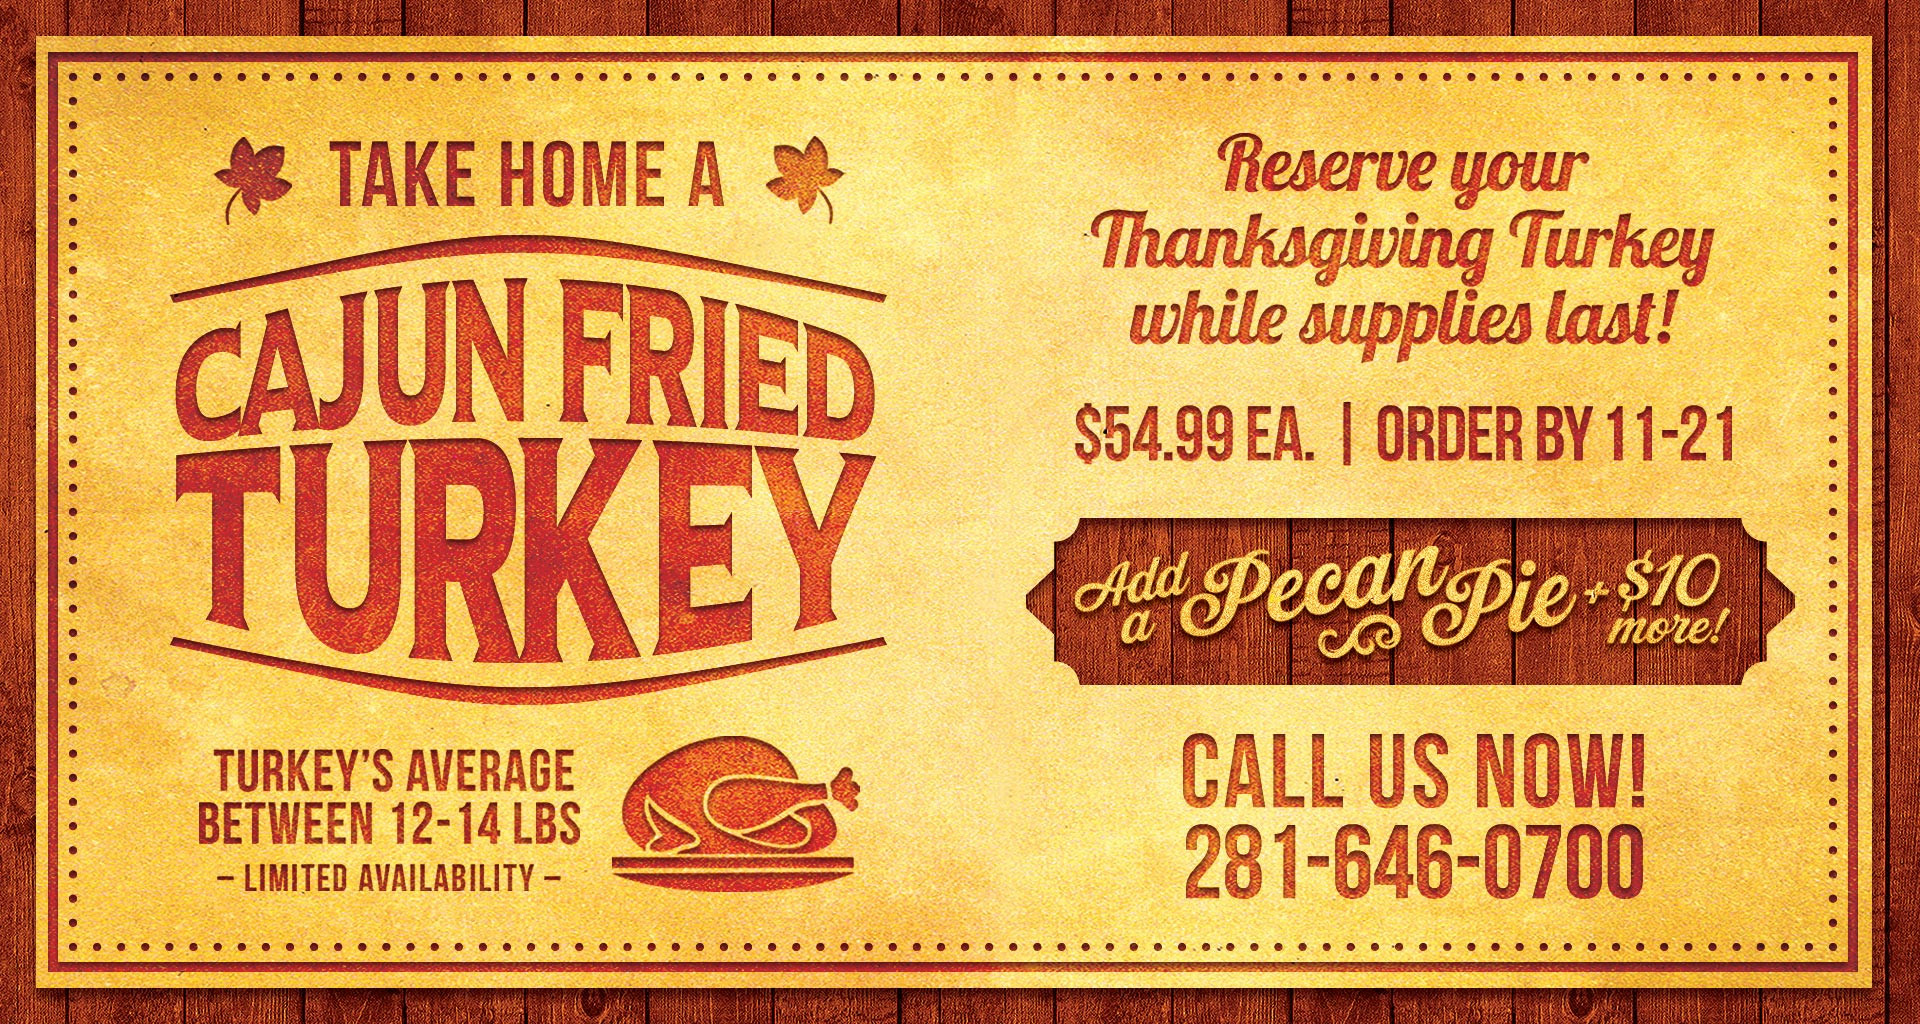 Order Fried Turkey For Thanksgiving  Take Home a Cajun Fried Turkey Orleans Seafood Kitchen